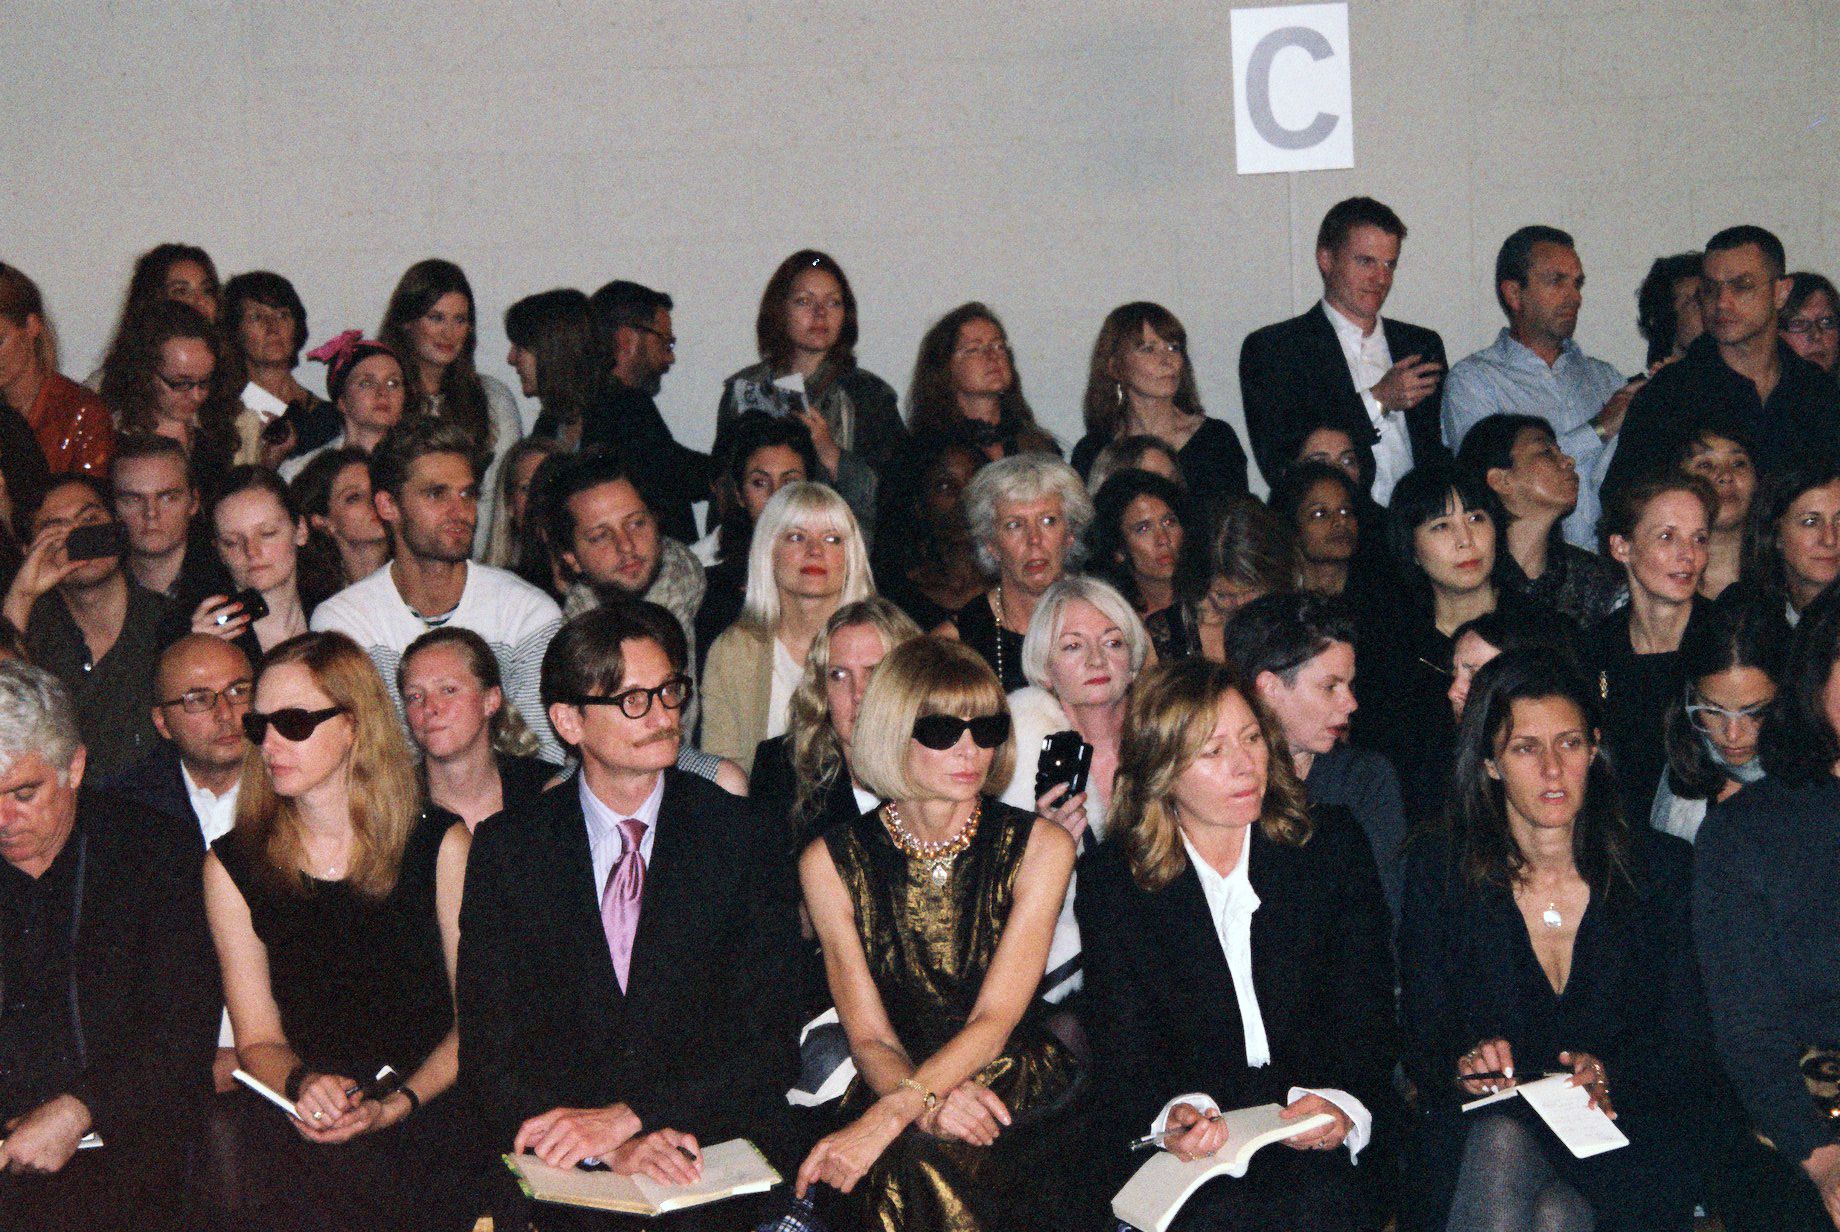 Anna Wintour and Hamish Bowles - Christopher Kane SS 2011